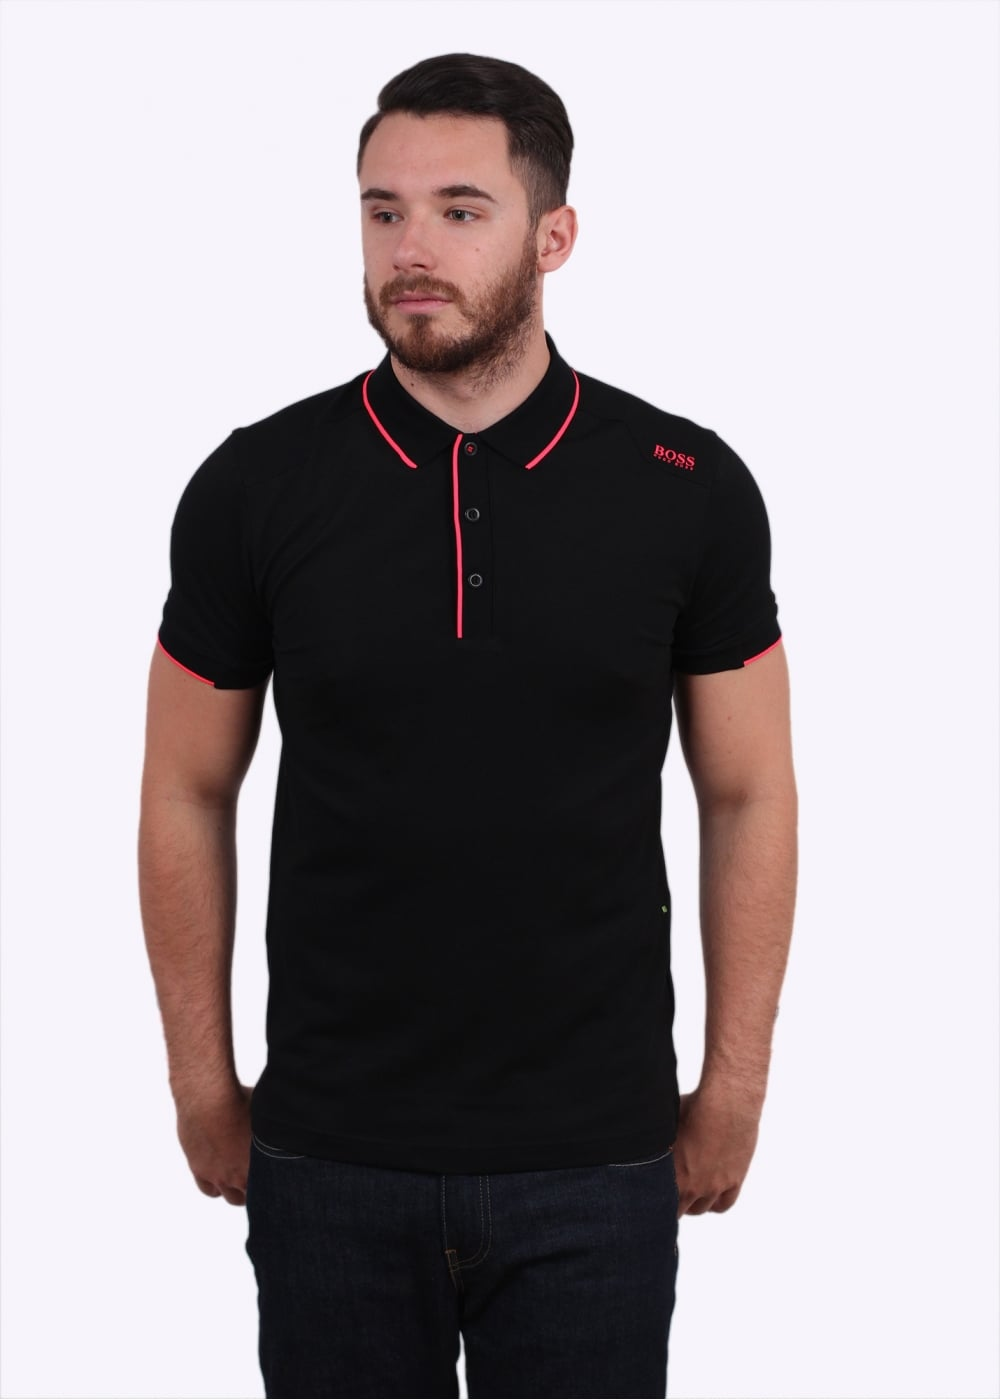 Hugo boss green paule 1 polo shirt black polo shirts for Hugo boss green polo shirt sale